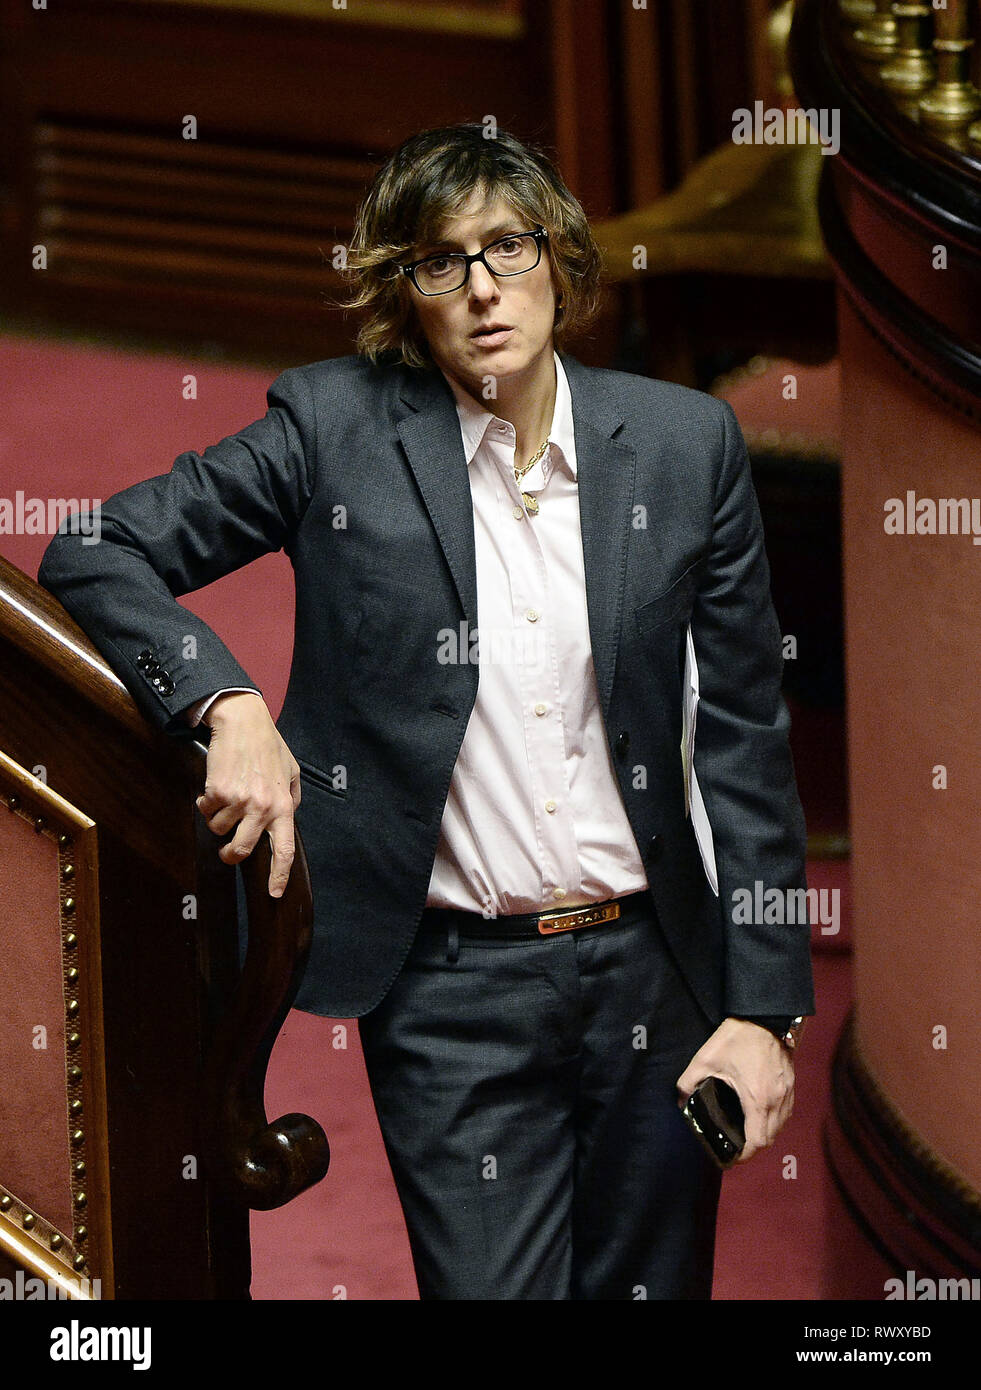 Foto Fabio Cimaglia / LaPresse 07-03-2019 Roma Politica Senato. Question Time Nella foto Giulia Bongiorno   Photo Fabio Cimaglia / LaPresse 07-03-2019 Roma (Italy) Politic Senate. Question Time In the pic Giulia Bongiorno Stock Photo